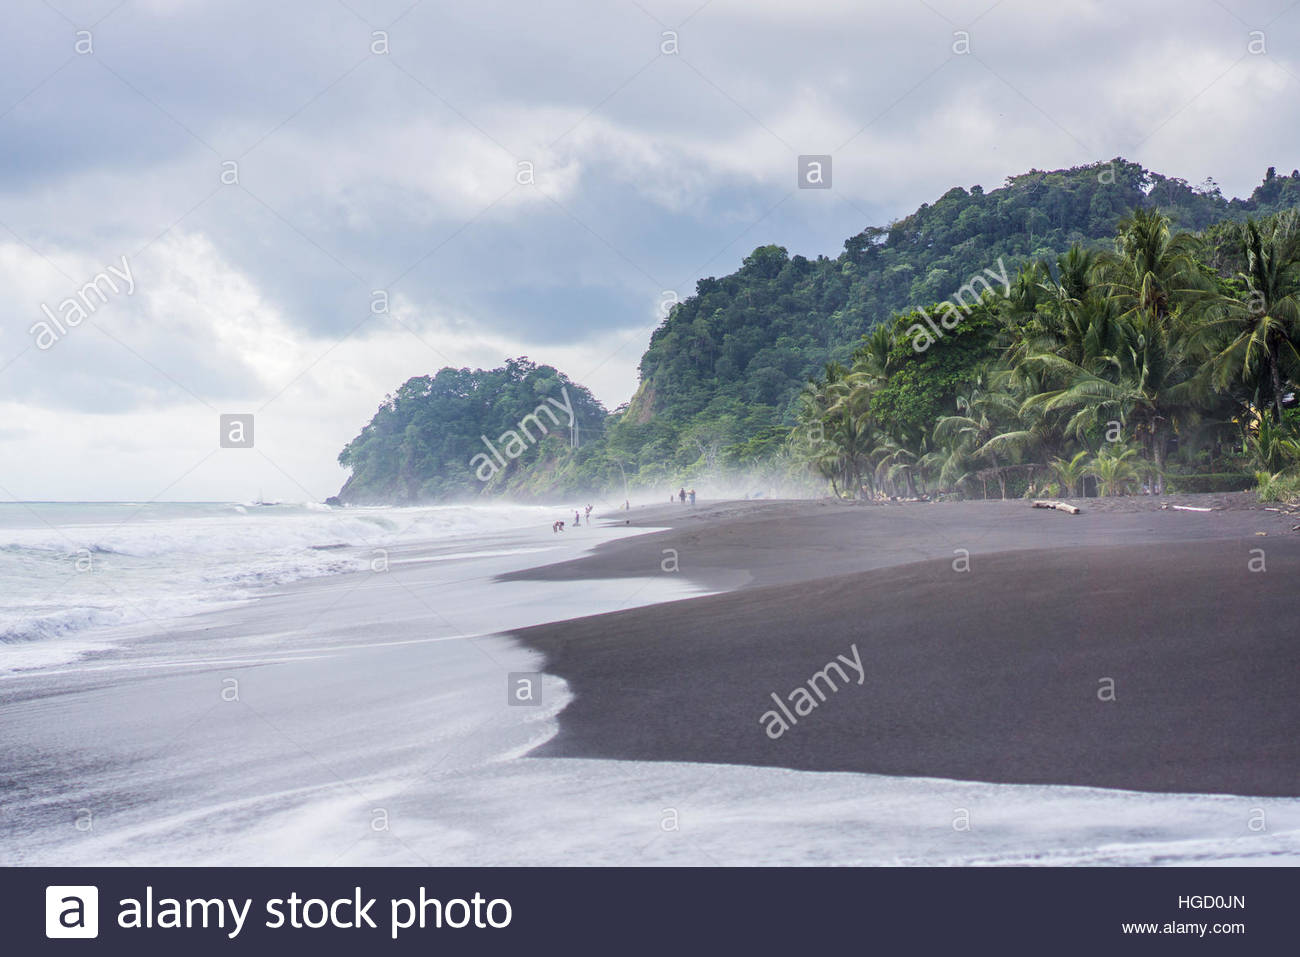 Playa Hermosa, Costa rica, Central America 2015 - Stock Image